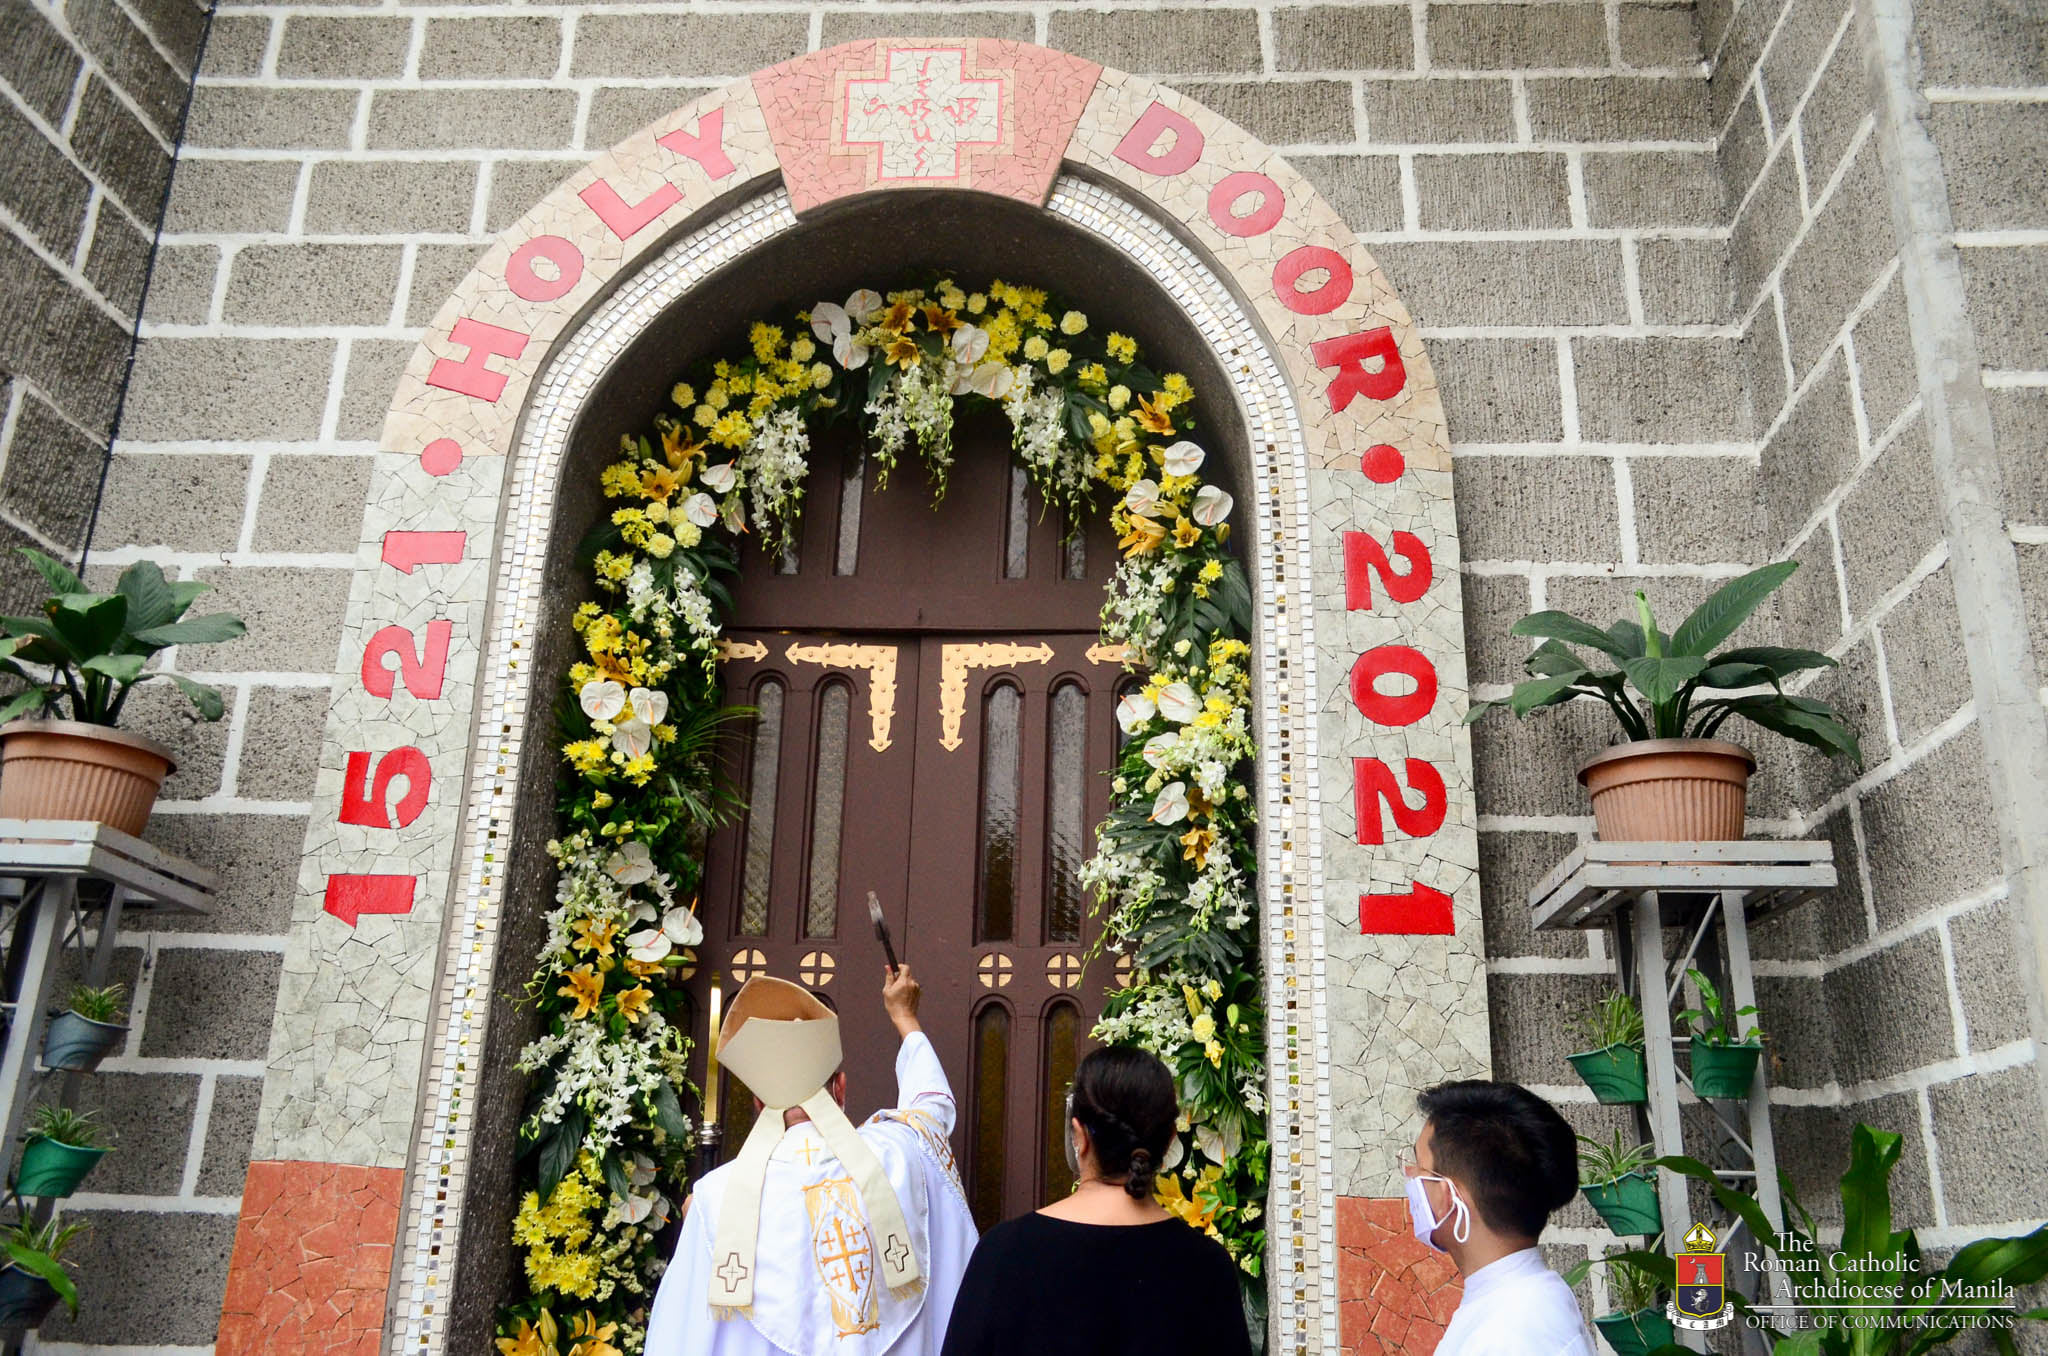 Bishop Pabillo Opens second Archdiocesan Jubilee door for the Celebration of 500YOC